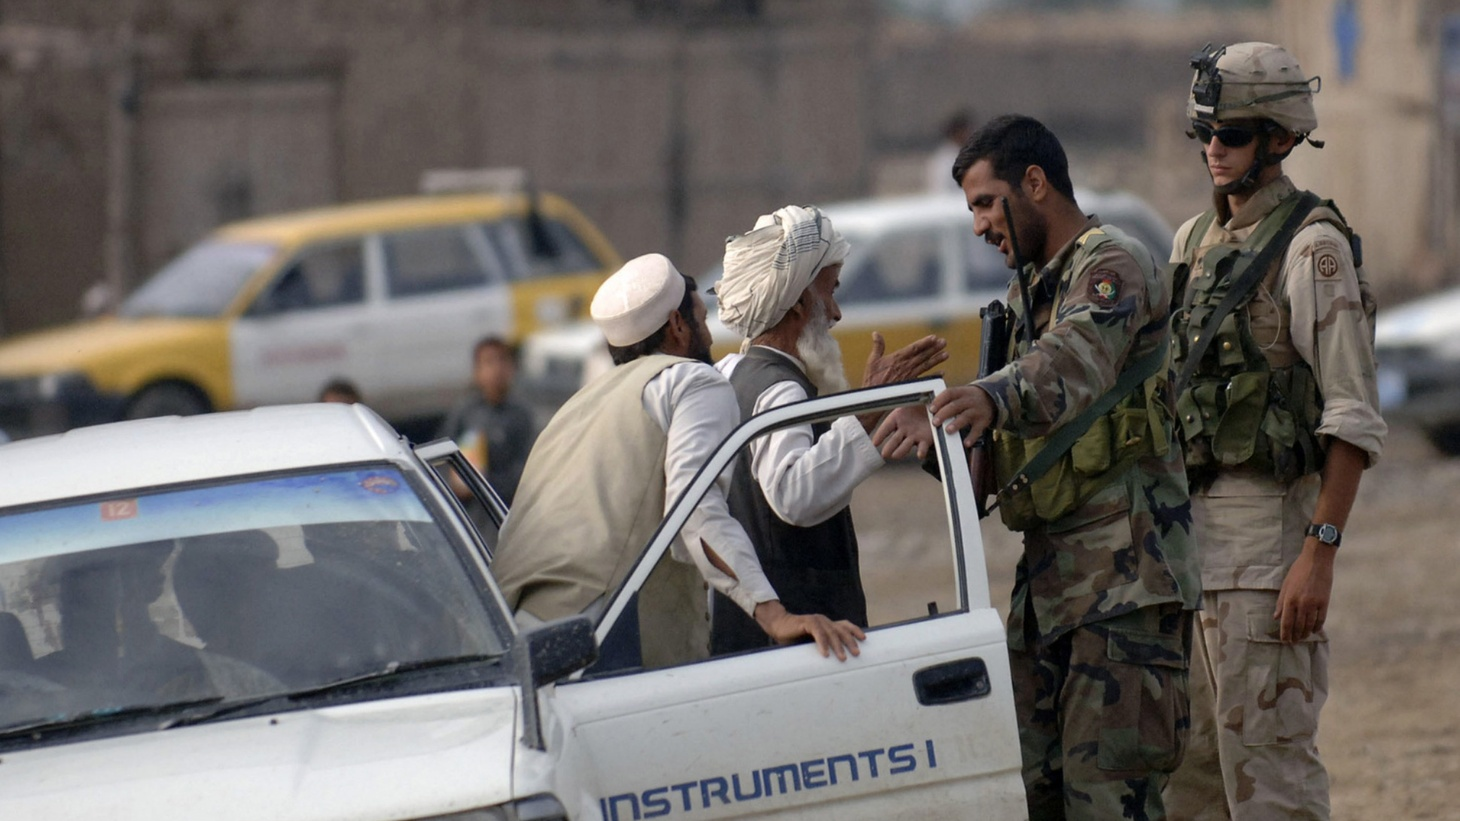 Personnel from the Afghanistan National Arm yand a US Army Soldier from A Company, 2/504 Parachute Infantry Regiment, 82nd Airborne Division, Alpha Company 2/504 Parachute Infantry Regiment, set up a temporary vehicle checkpoint in the city of Bak, in support of Operation Enduring Freedom.